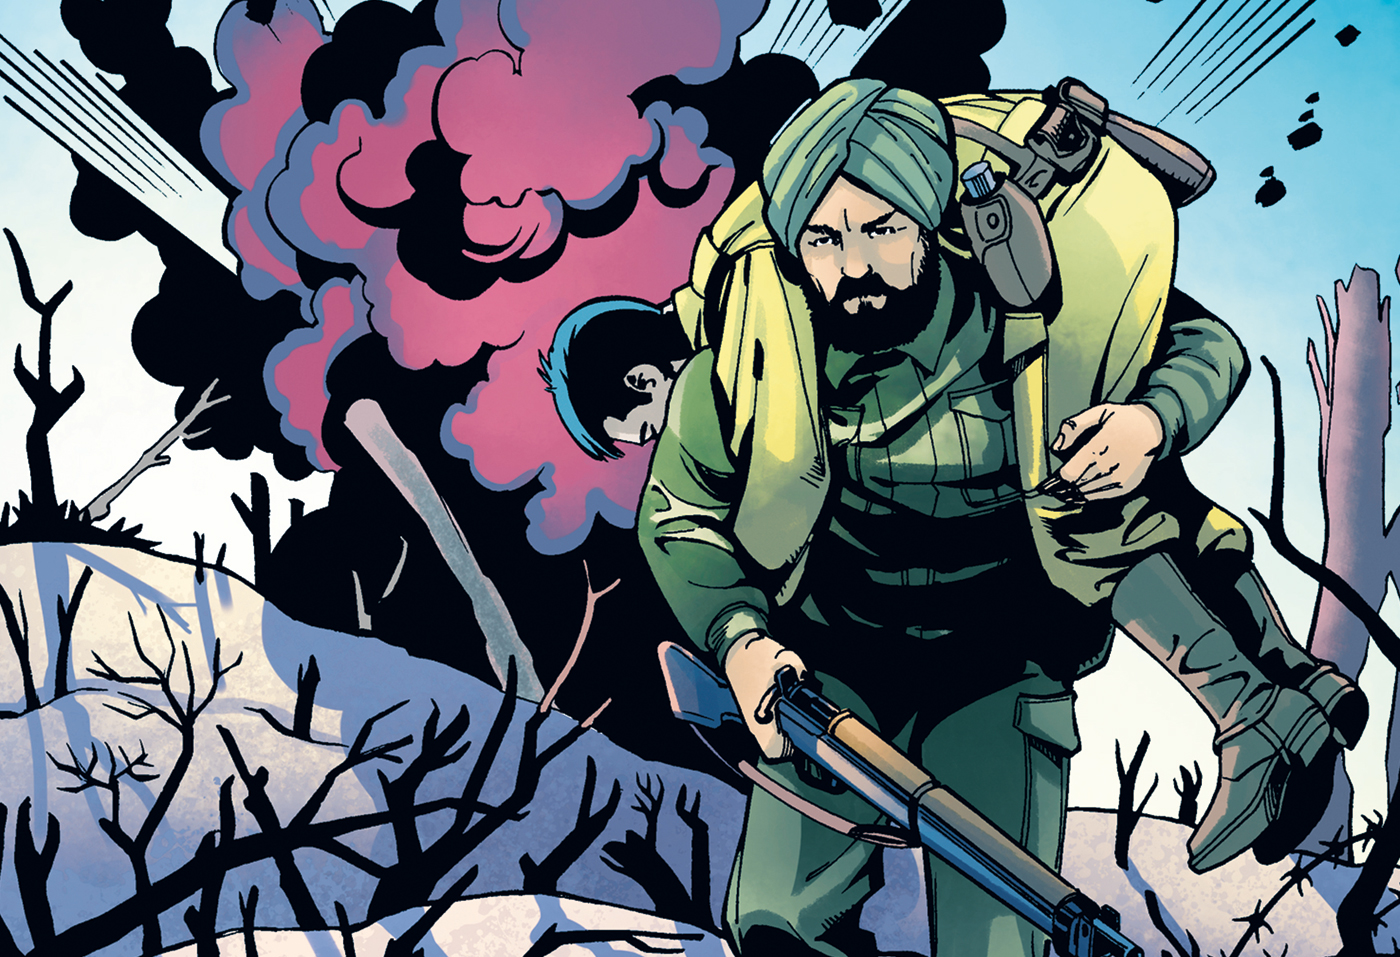 An artist's depiction of the film Promises portrays an Allied soldier from India in action in the Second World War Battle of Monte Carlo in 1944. The Indus Media Foundation film production will portray the contributions made by South Asian soldiers during the war.